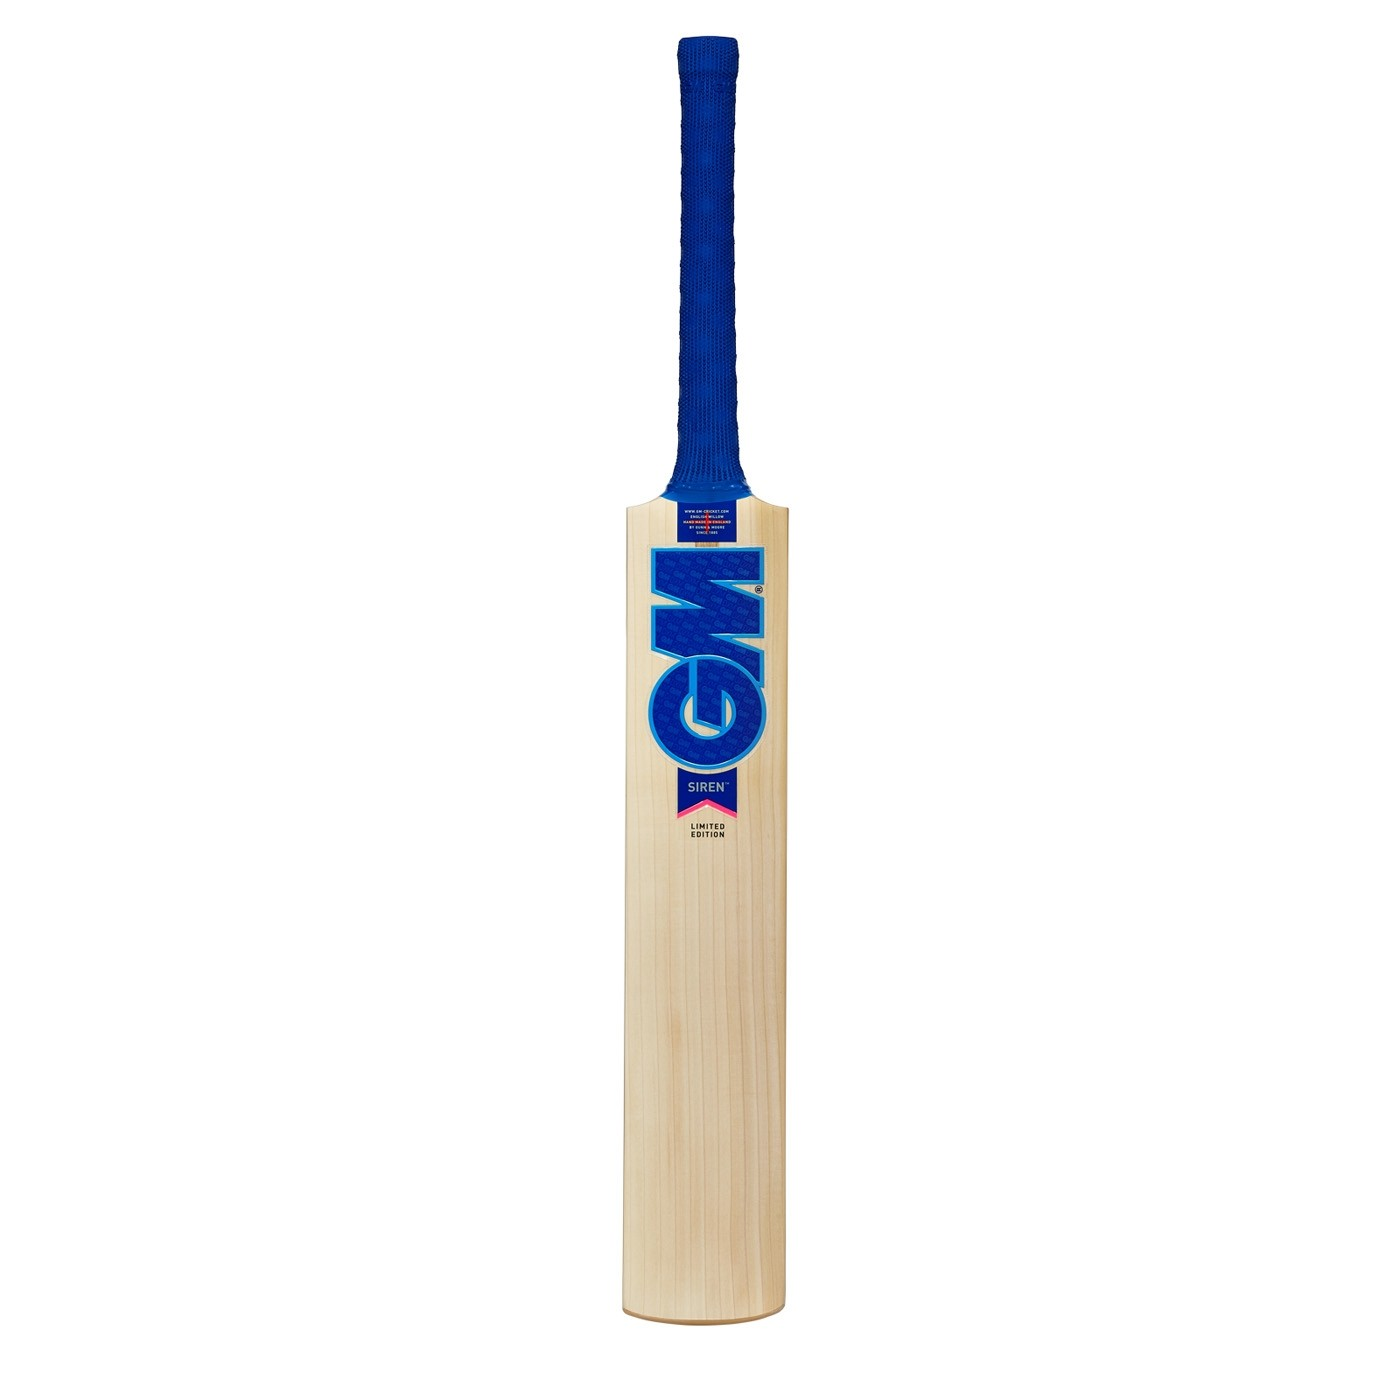 2020 Gunn and Moore Siren DXM Original Cricket Bat